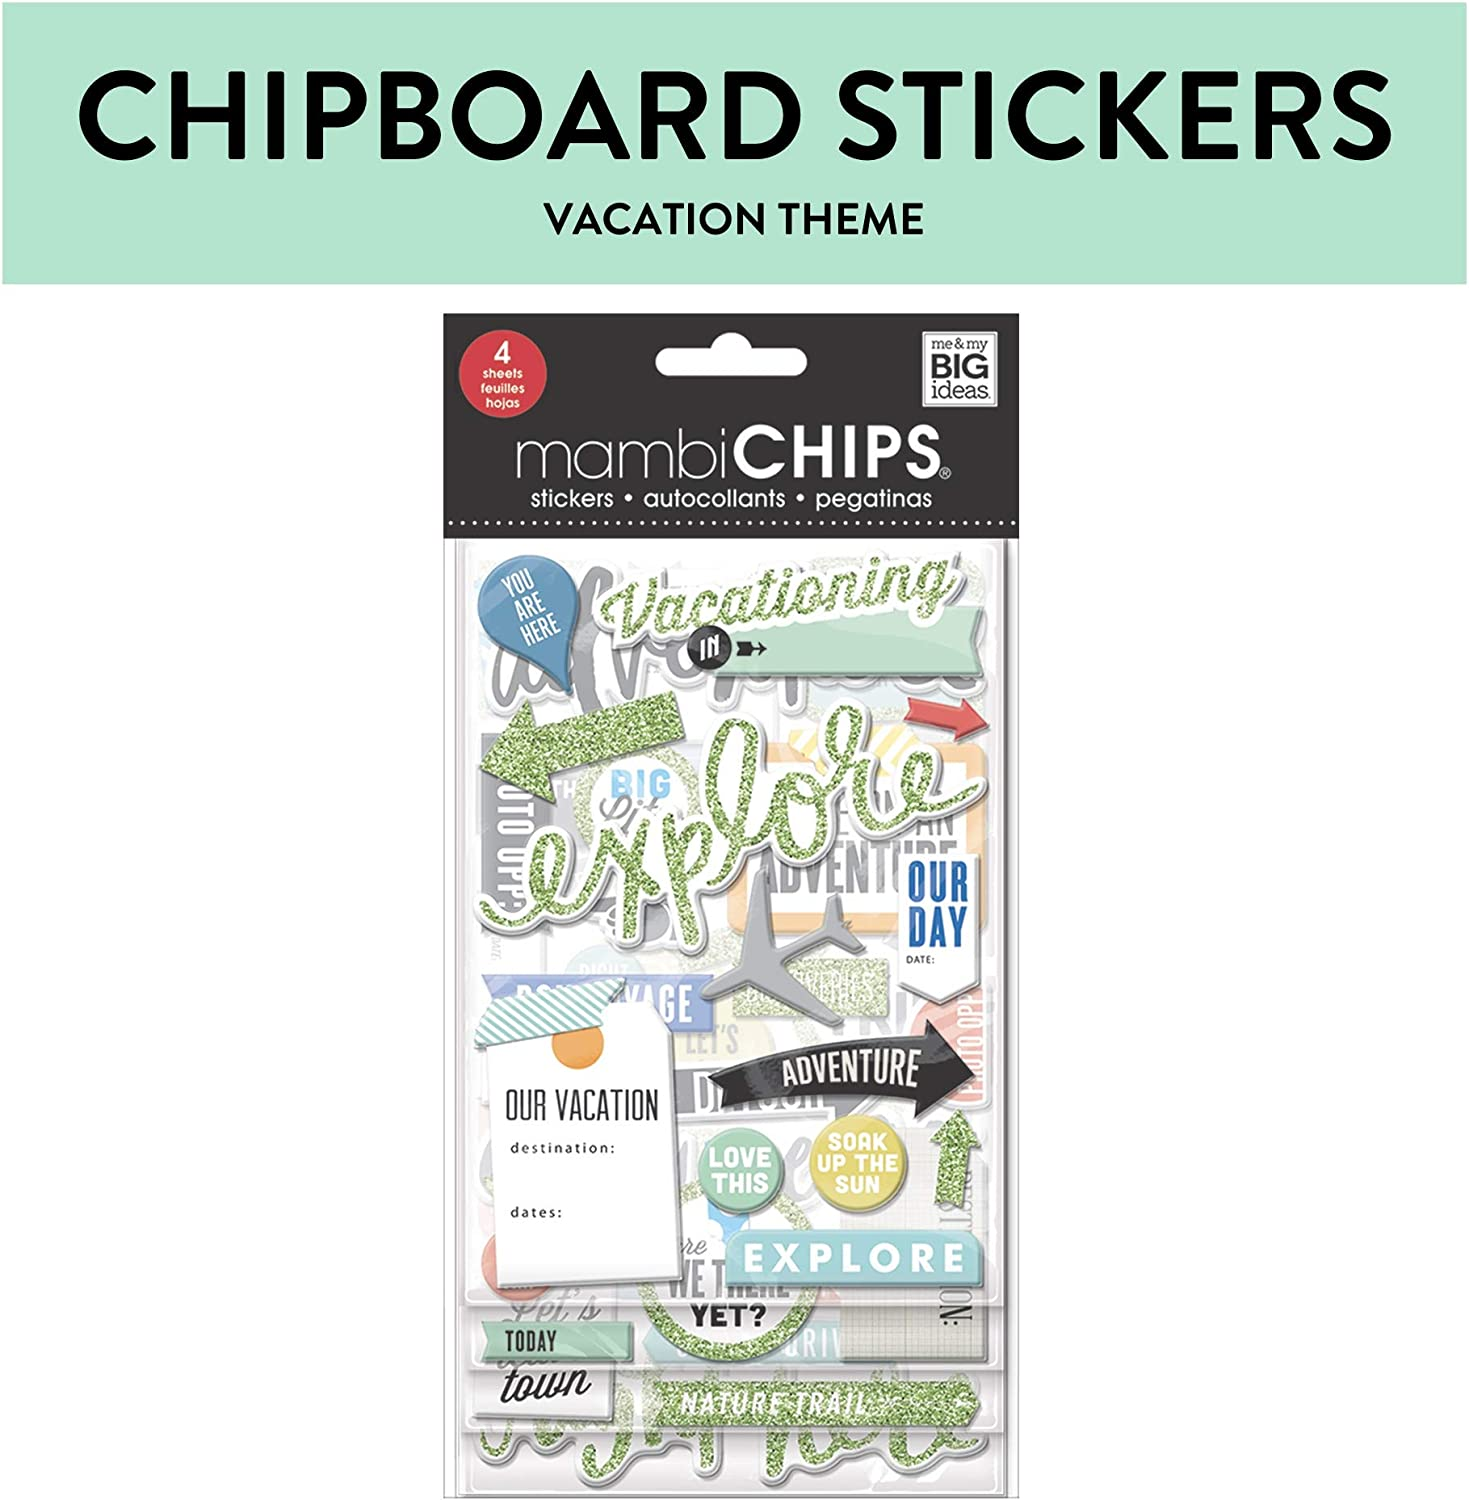 Me & My Big Ideas mambiChips Chipboard Stickers - Scrapbooking Supplies - Vacation Theme - Metallic Glitter & Multi-Color - Great for Projects, Scrapbooks & Albums - 4 Sheets, 65 Stickers Total